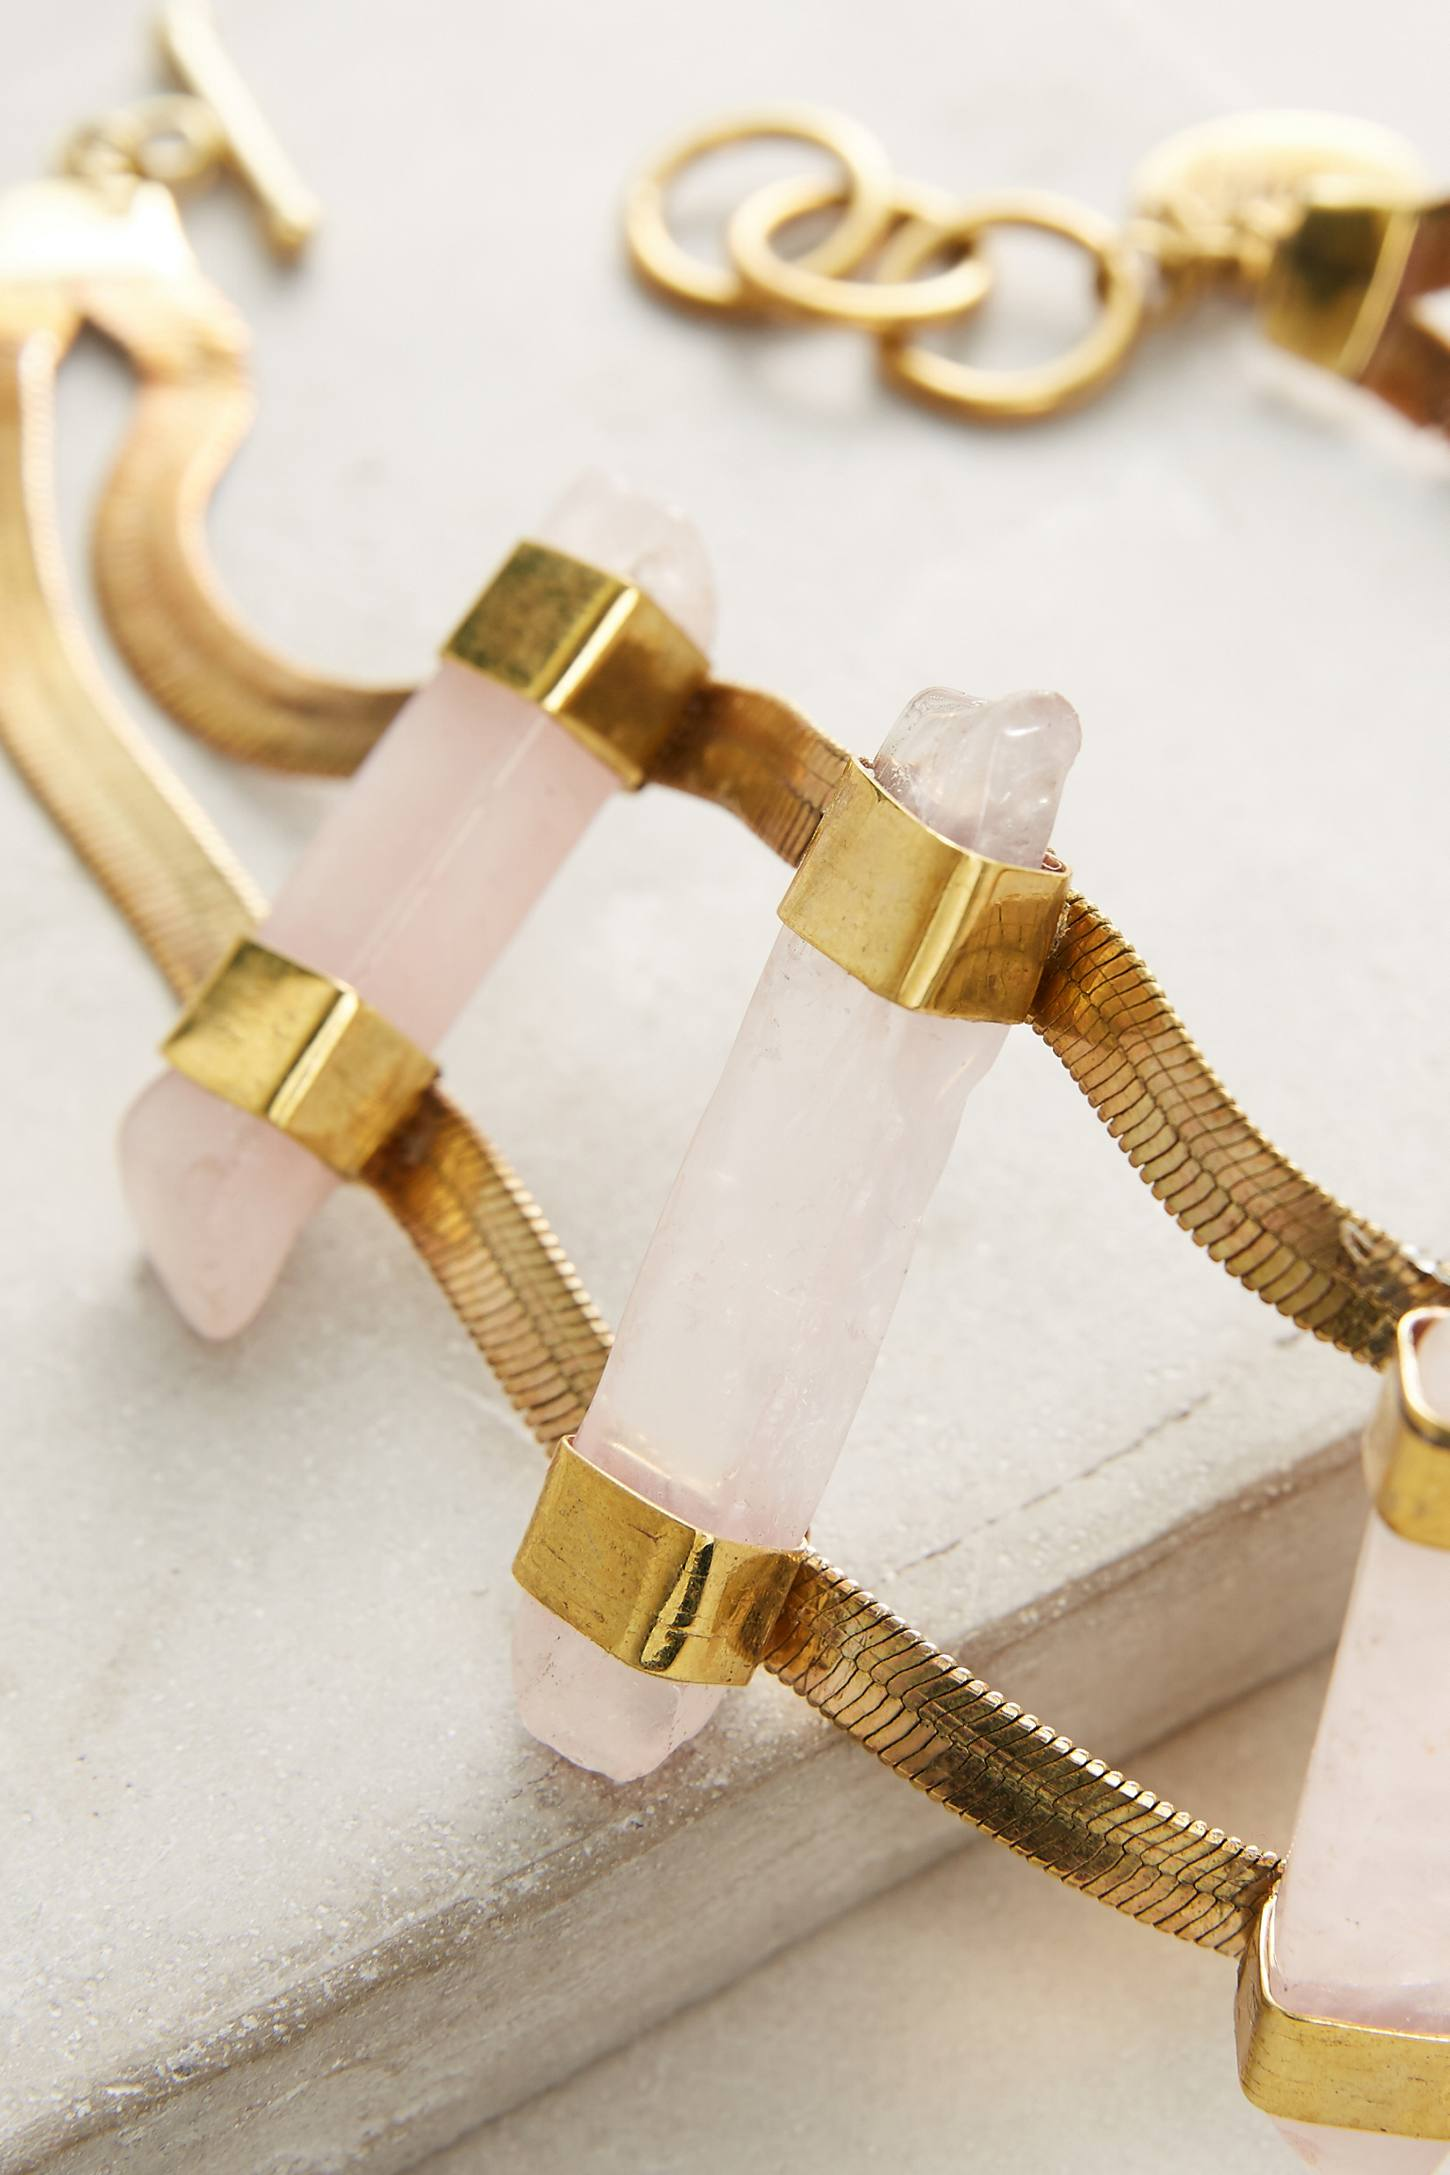 Slide View: 2: Venetia Choker Necklace